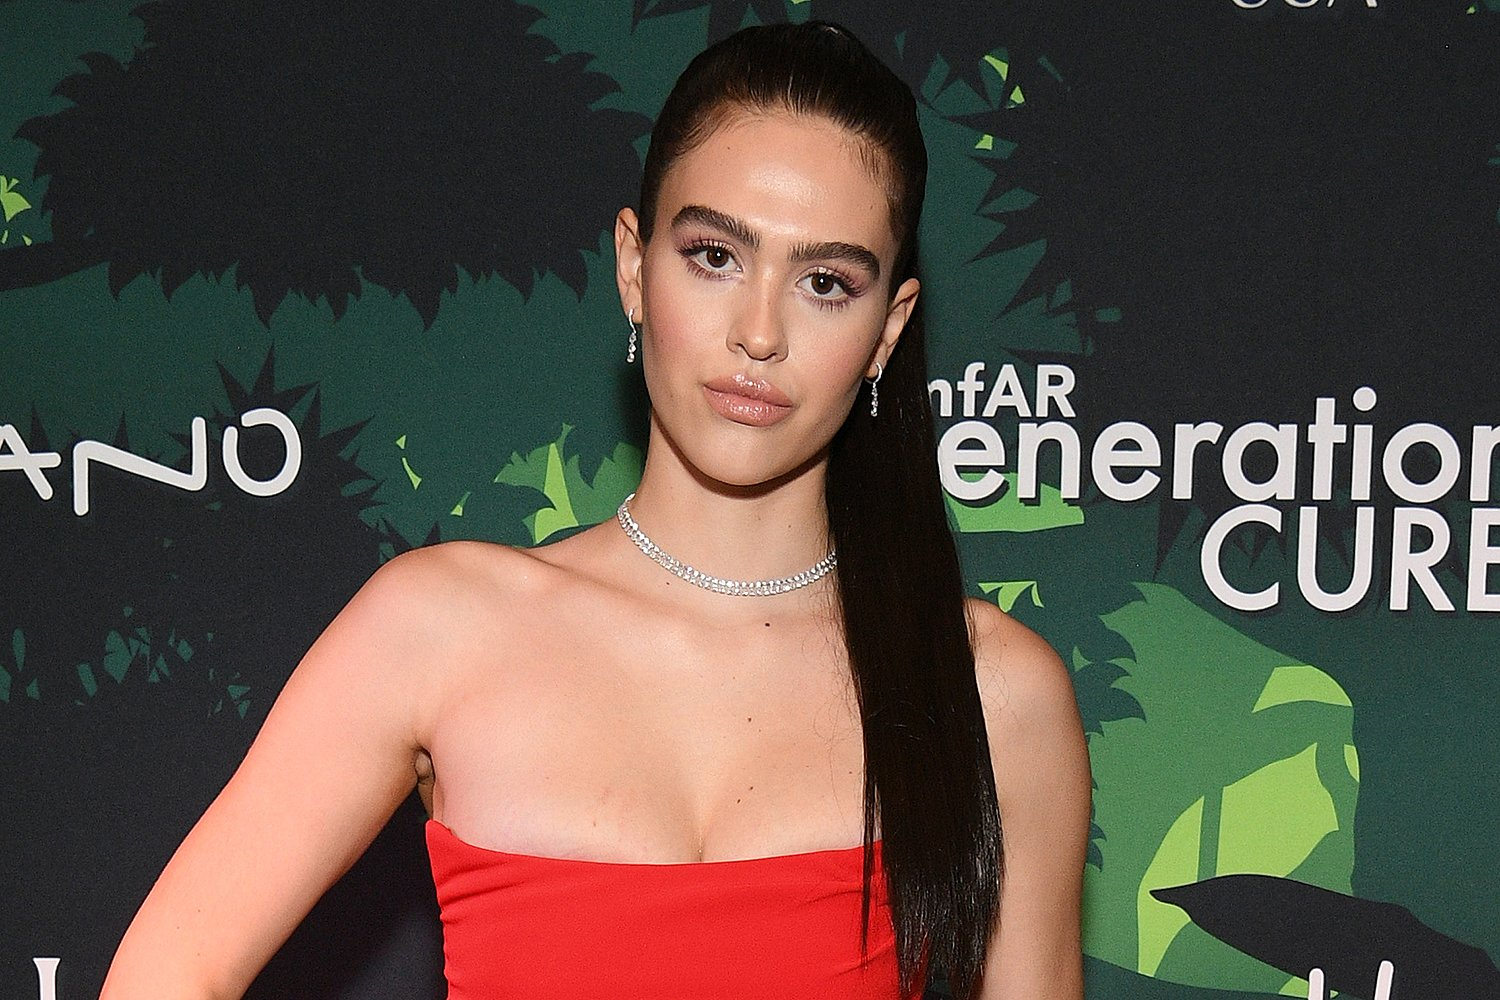 Amelia Hamlin Insists She Tans Easily After Darker Skin Pictures Get Her In Trouble For Supposed 'Blackfishing'